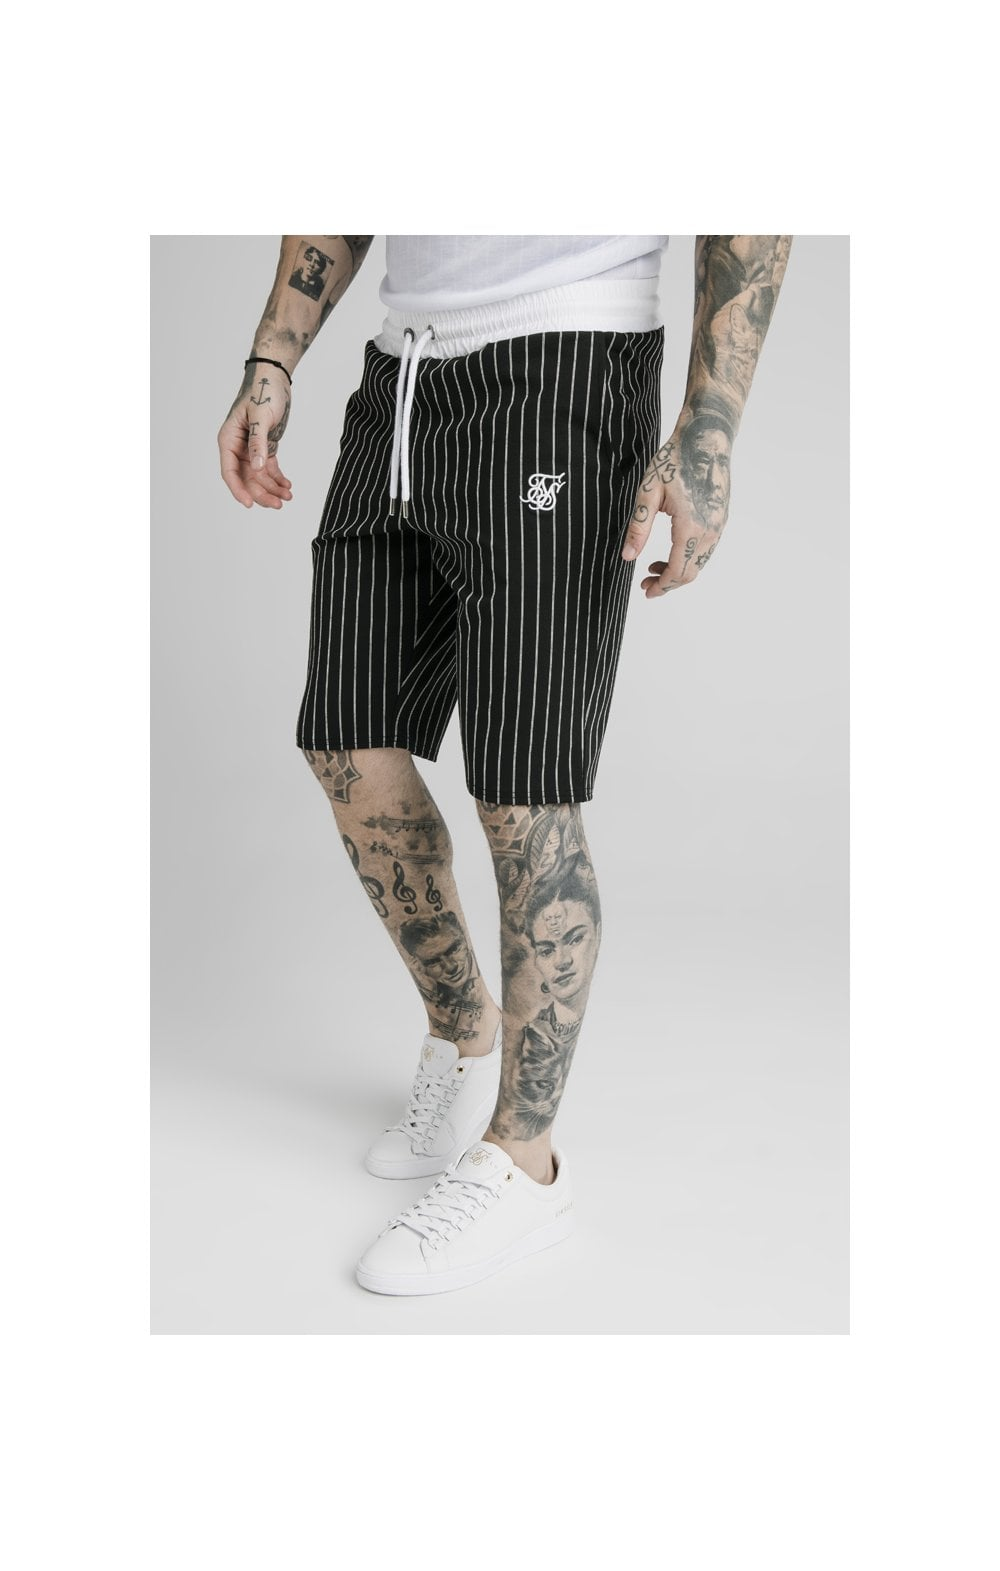 Load image into Gallery viewer, SikSilk Chino Elasticated Long Shorts - Black & White